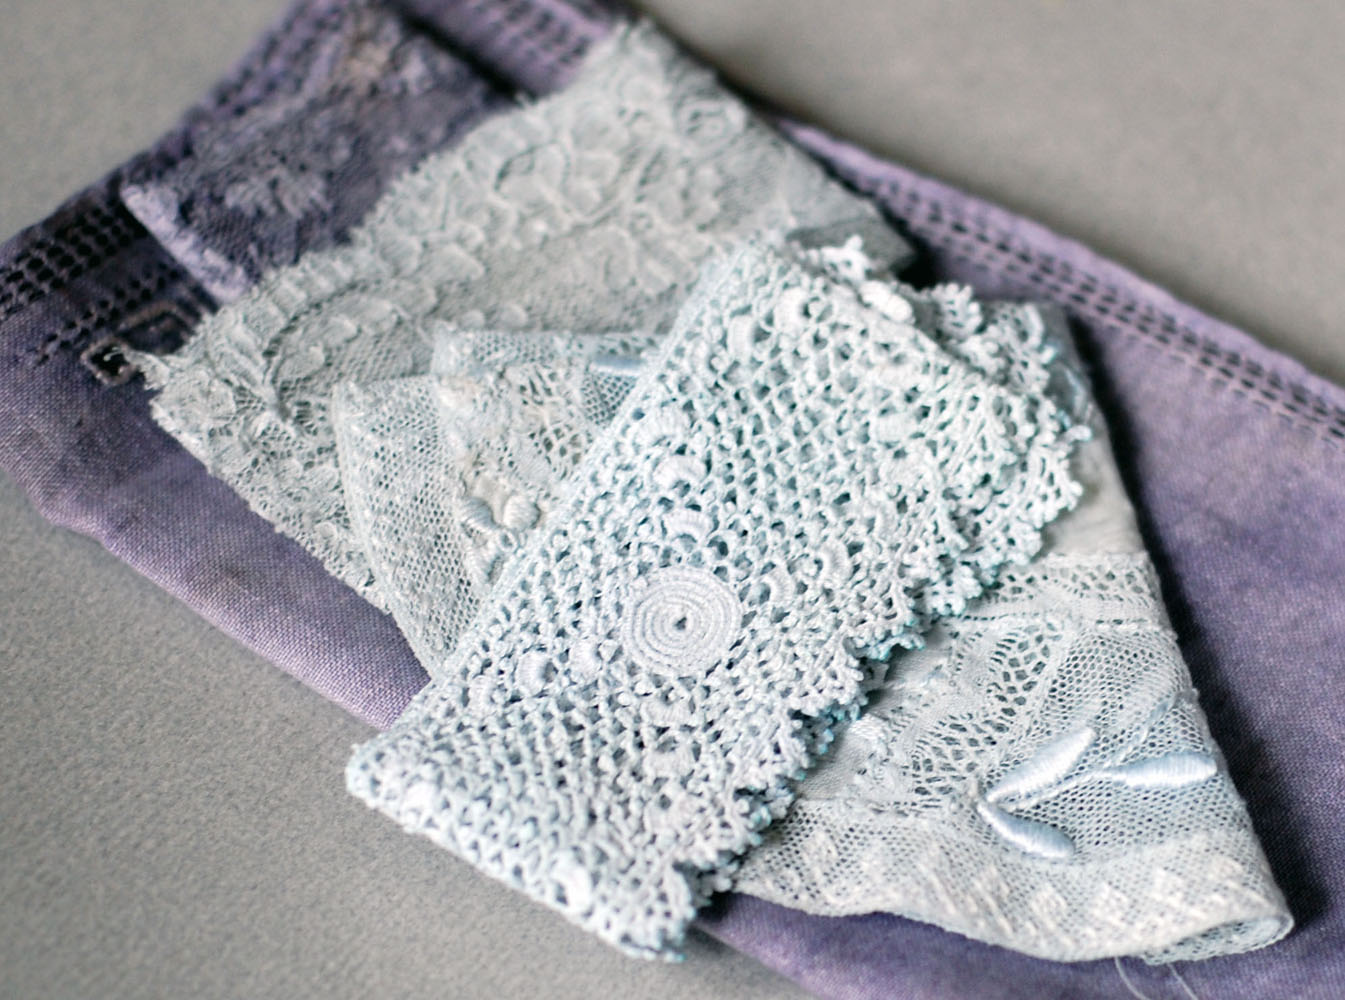 naturally dyed vintage lace